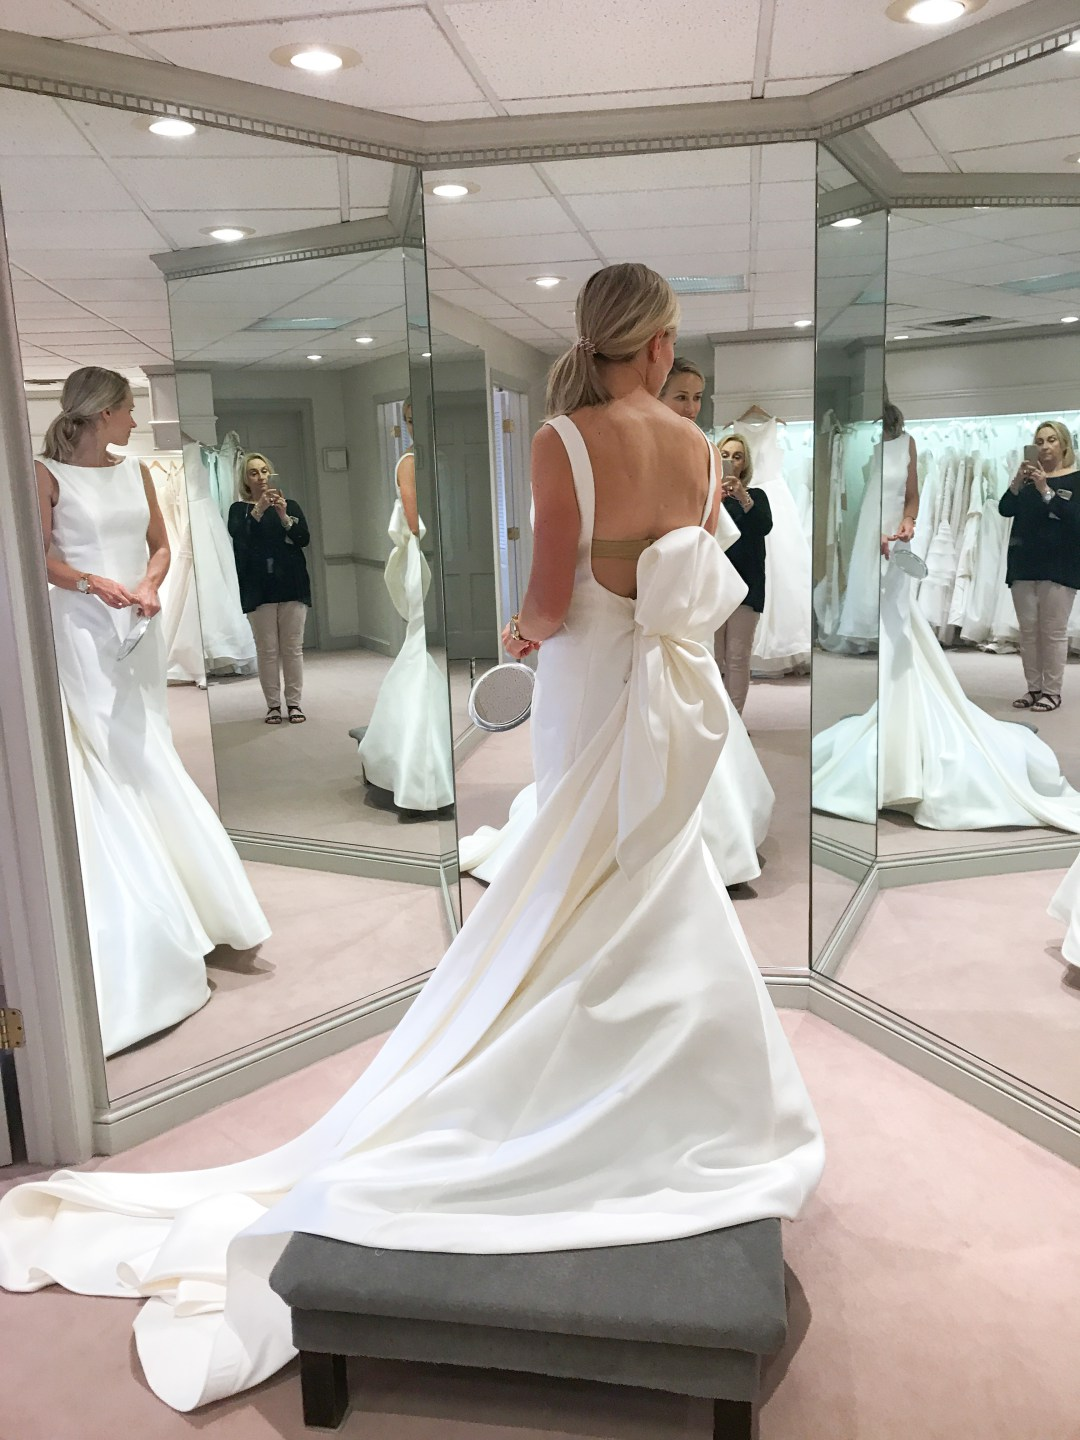 Wedding Dress With Dramatic Back A Foodie Stays Fit